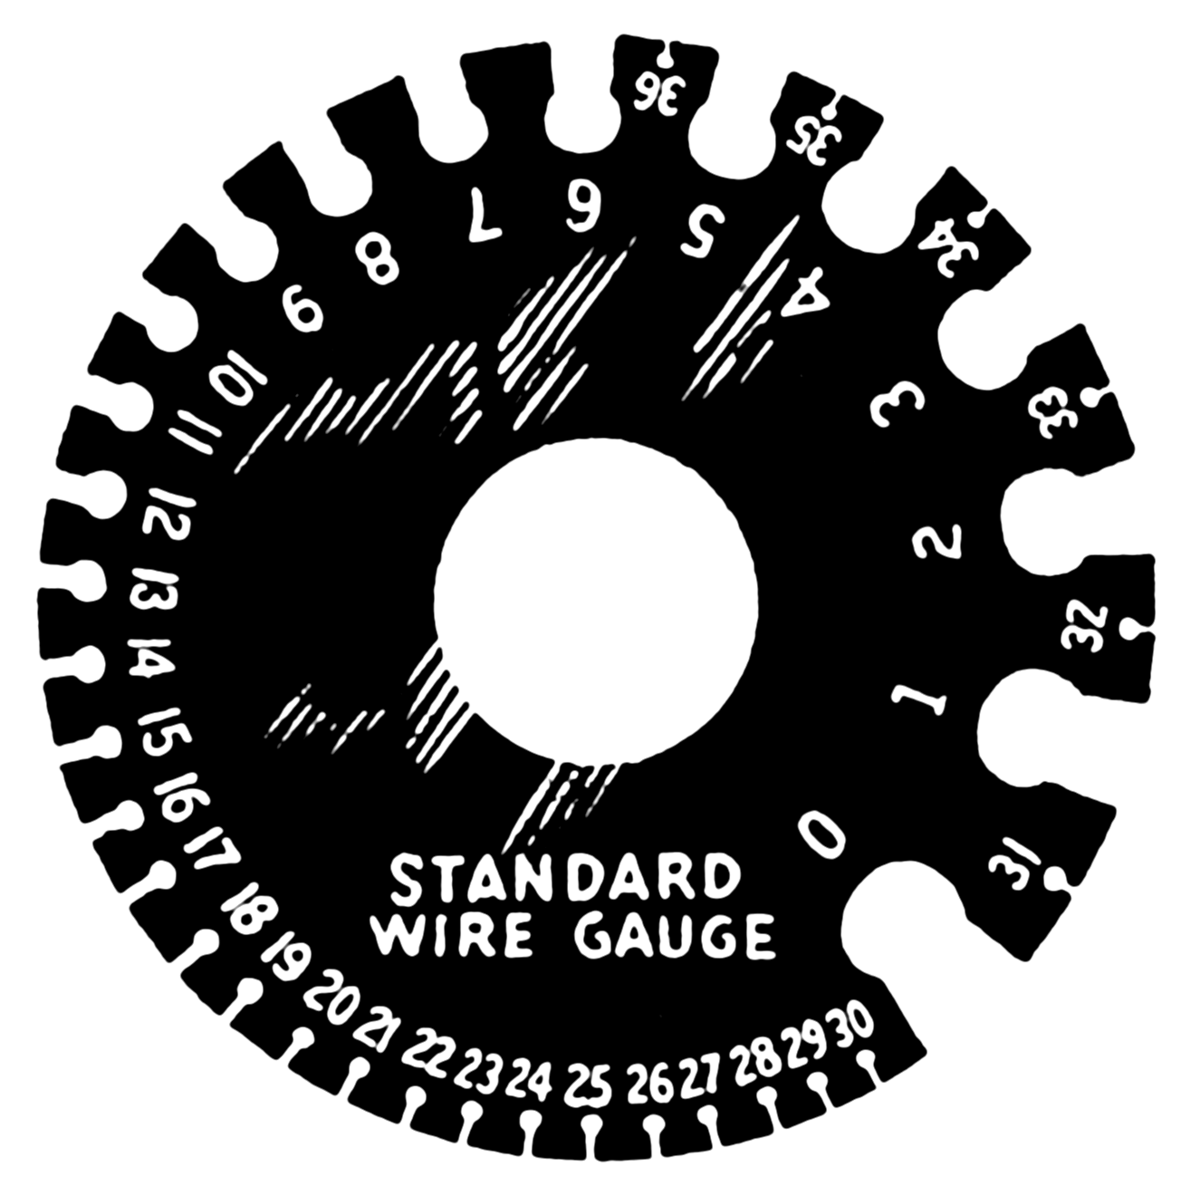 Standard wire gauge wikipedia greentooth Choice Image